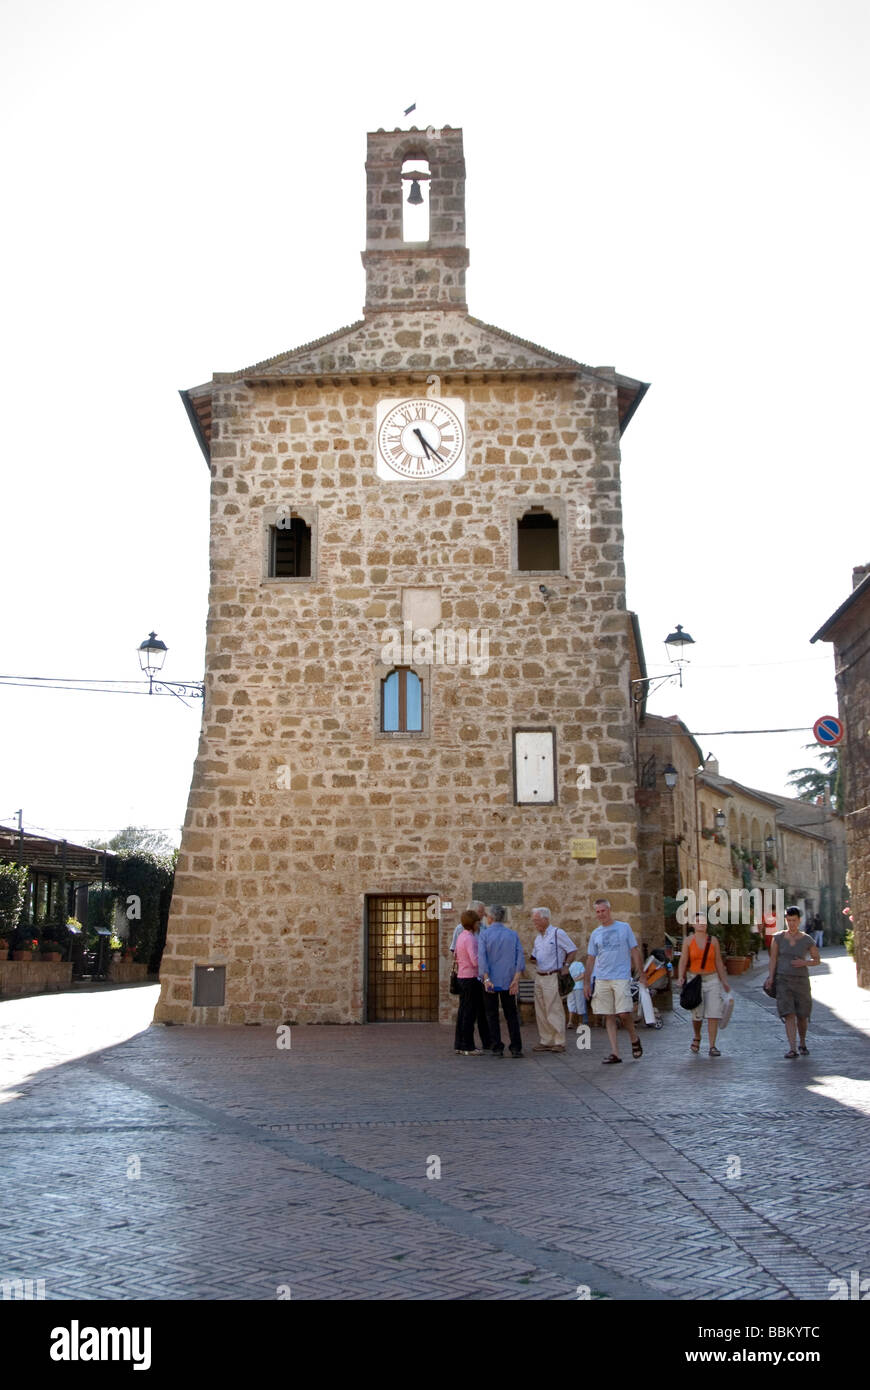 Main Piazza in Sovana an Etruscan settlement and important town in the middle ages and birthplace of Pope Gregory - Stock Image